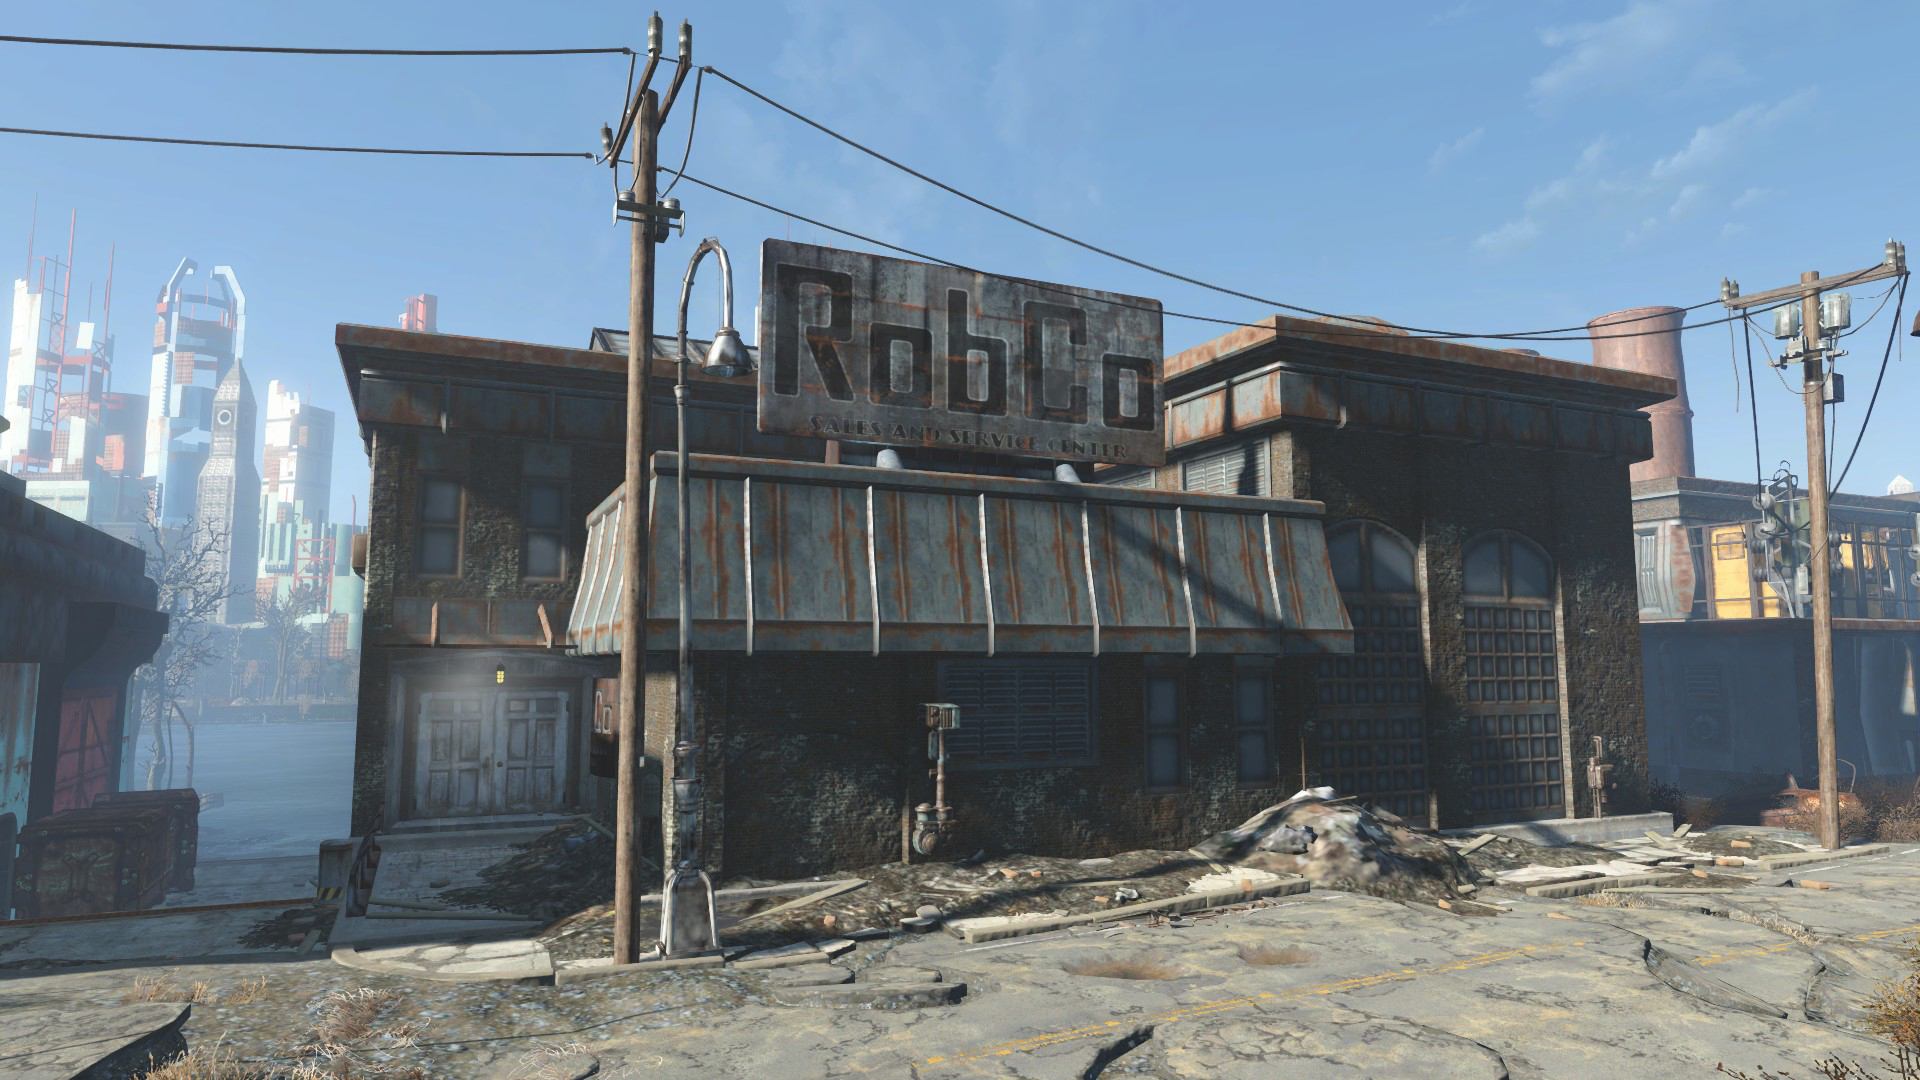 latest?cb=20160327013306 robco sales & service center fallout wiki fandom powered by wikia fallout 4 east boston police station fuse box at readyjetset.co